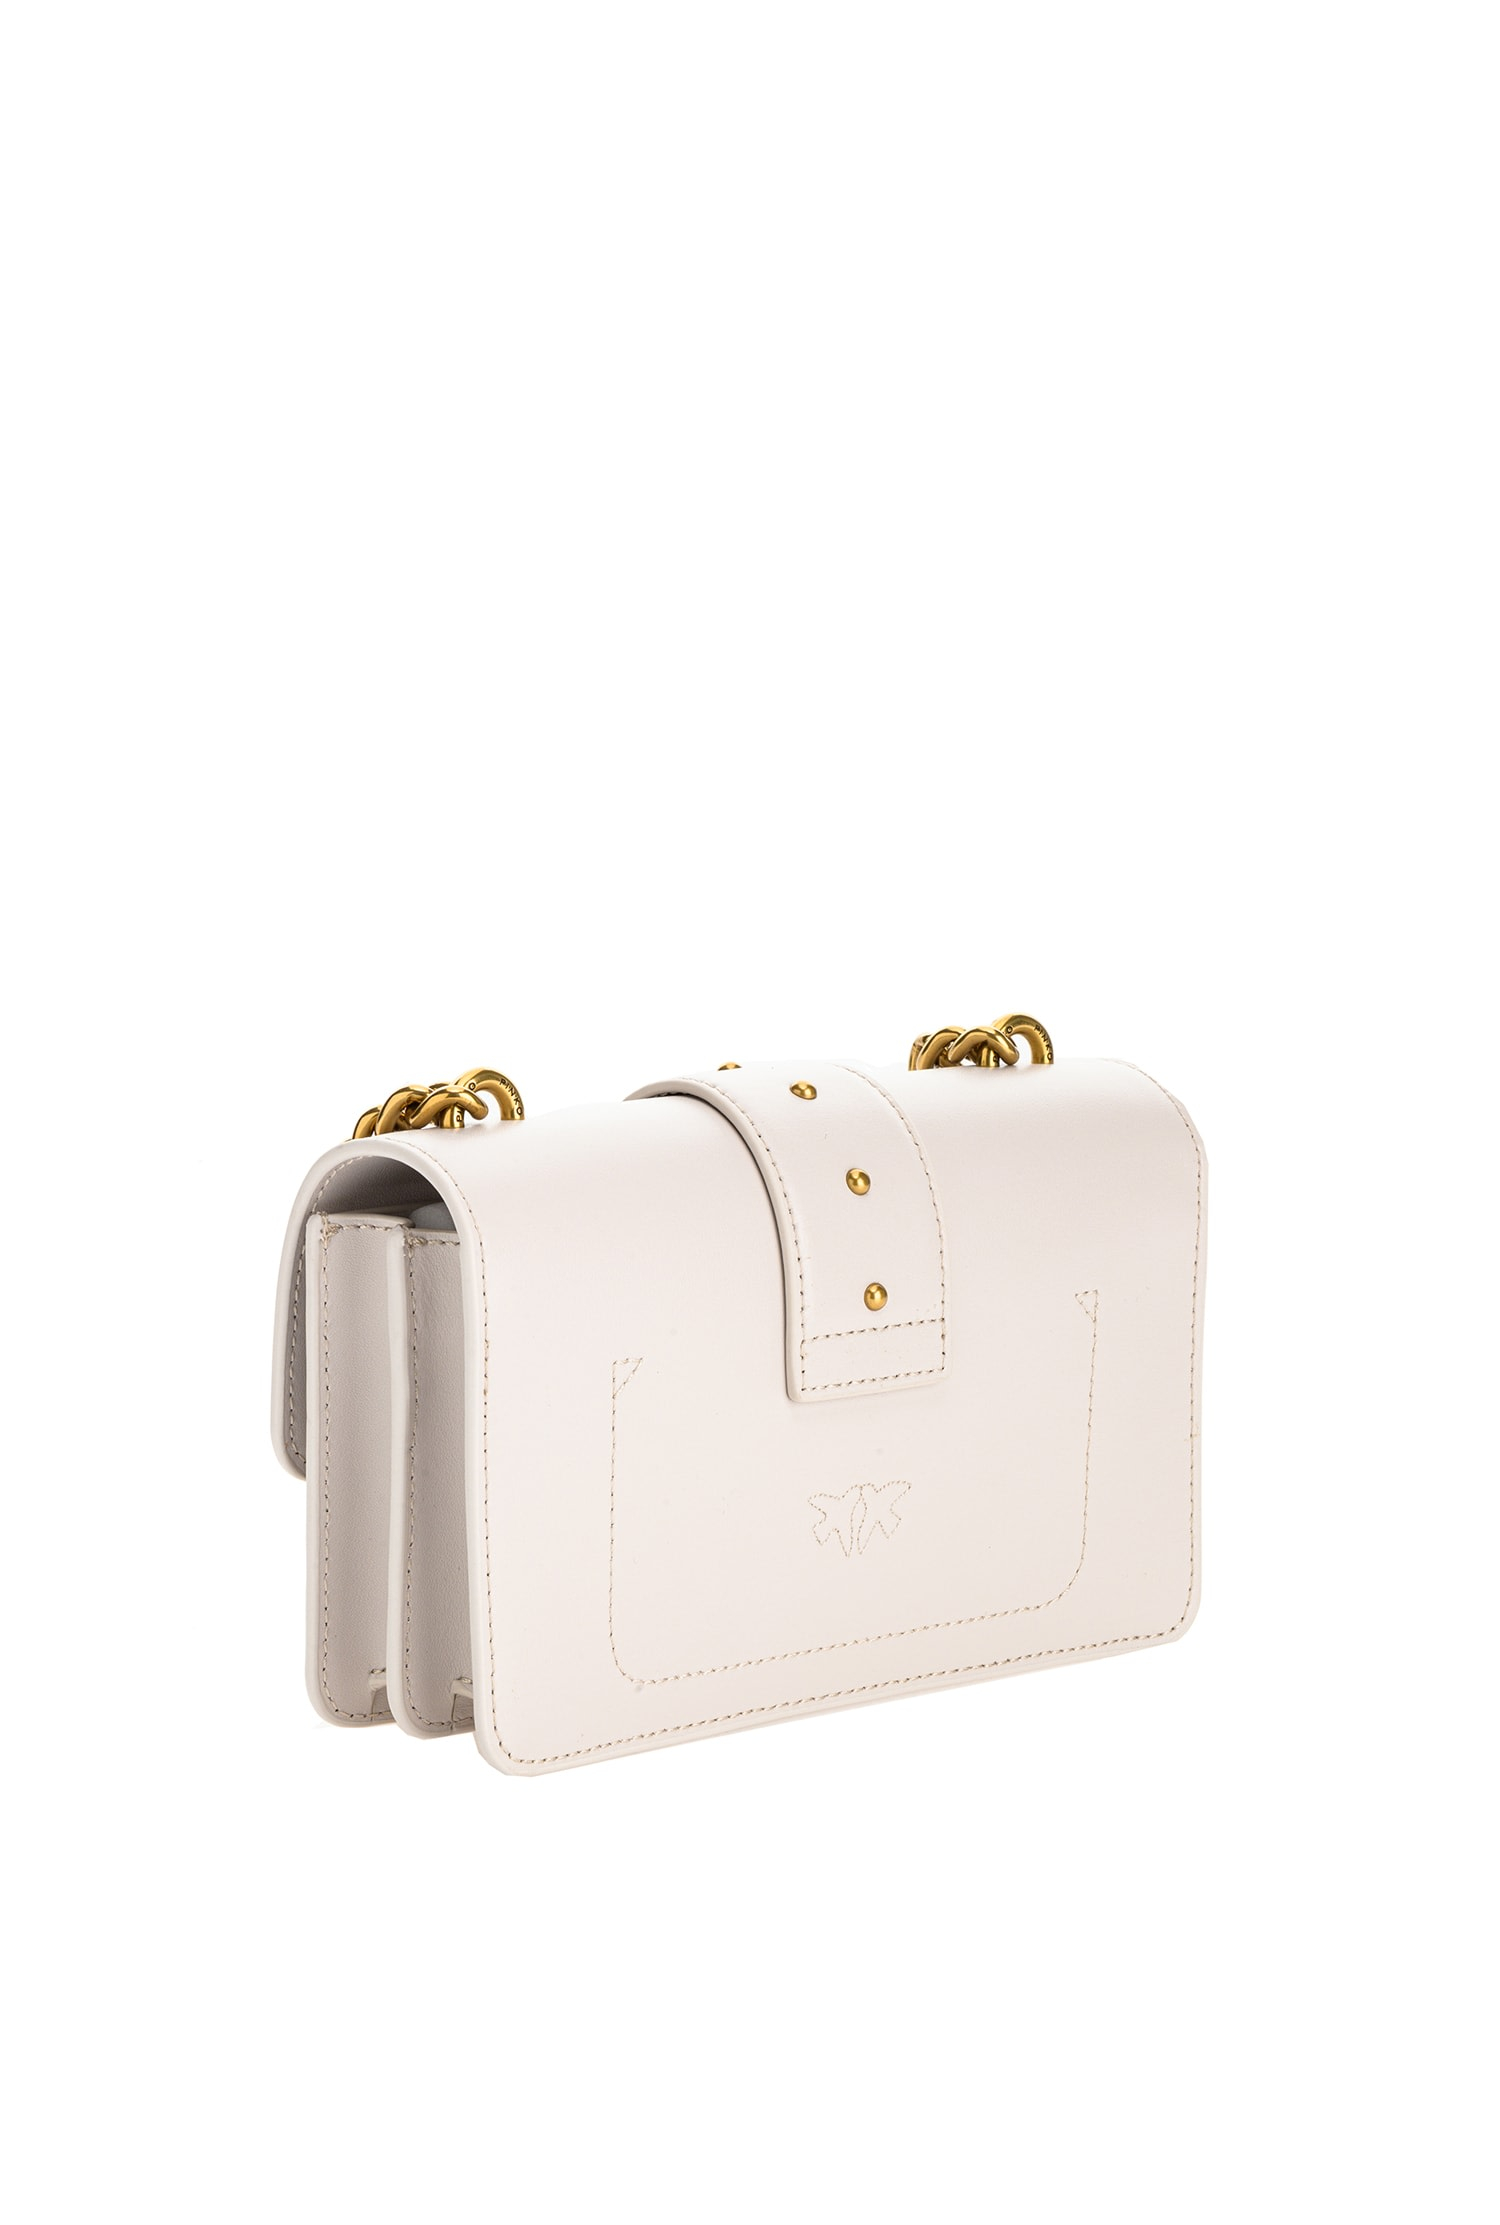 SHOPPING ON LINE PINKO MINI LOVE BAG SIMPLY IN PELLE NEW COLLECTION WOMEN'S FALL WINTER 2020/2021